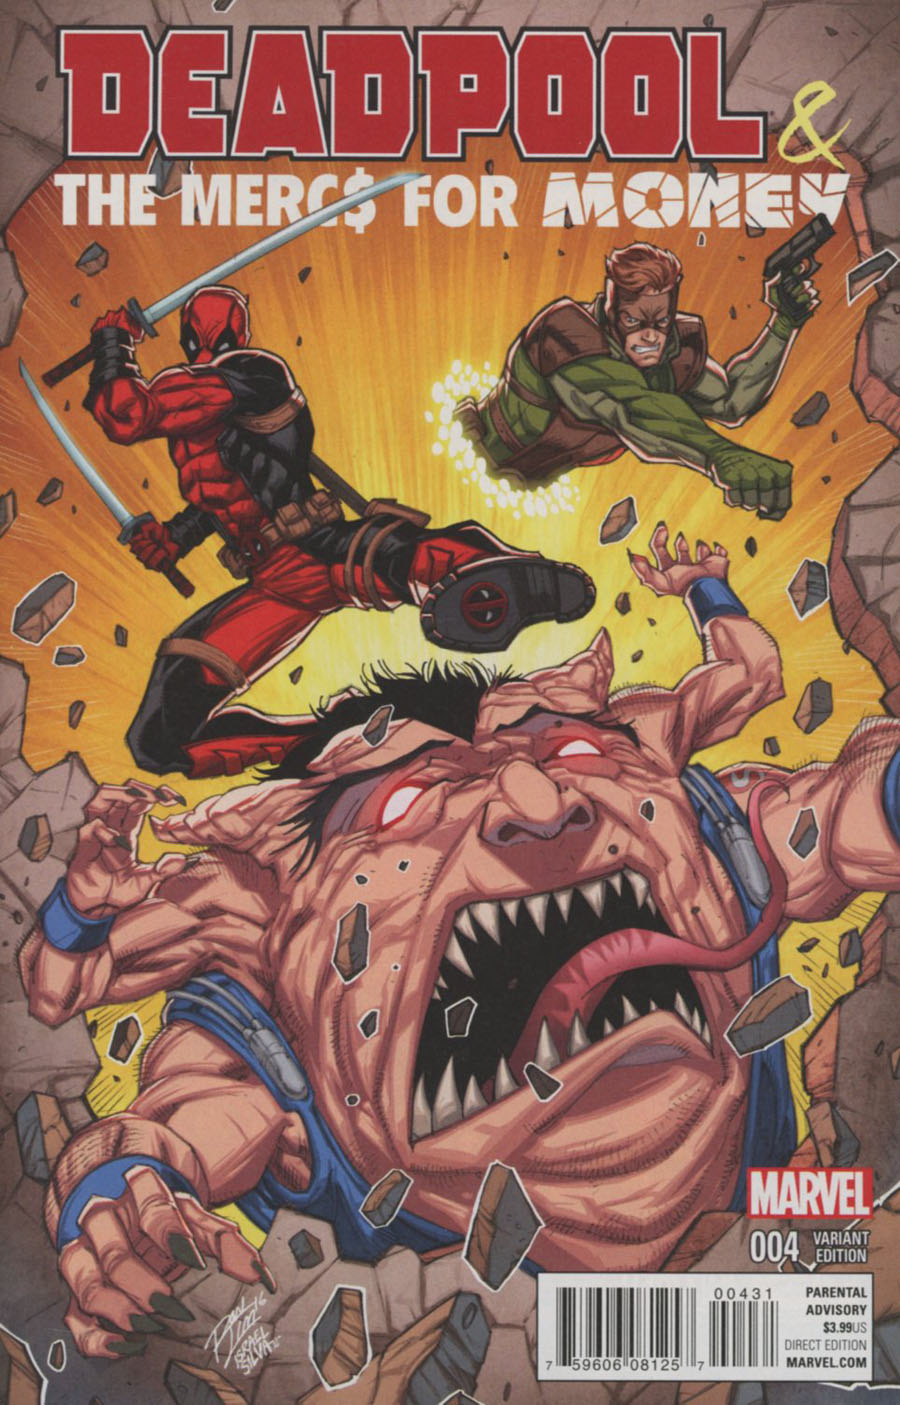 Deadpool And The Mercs For Money #4 Cover B Variant Ron Lim Cover